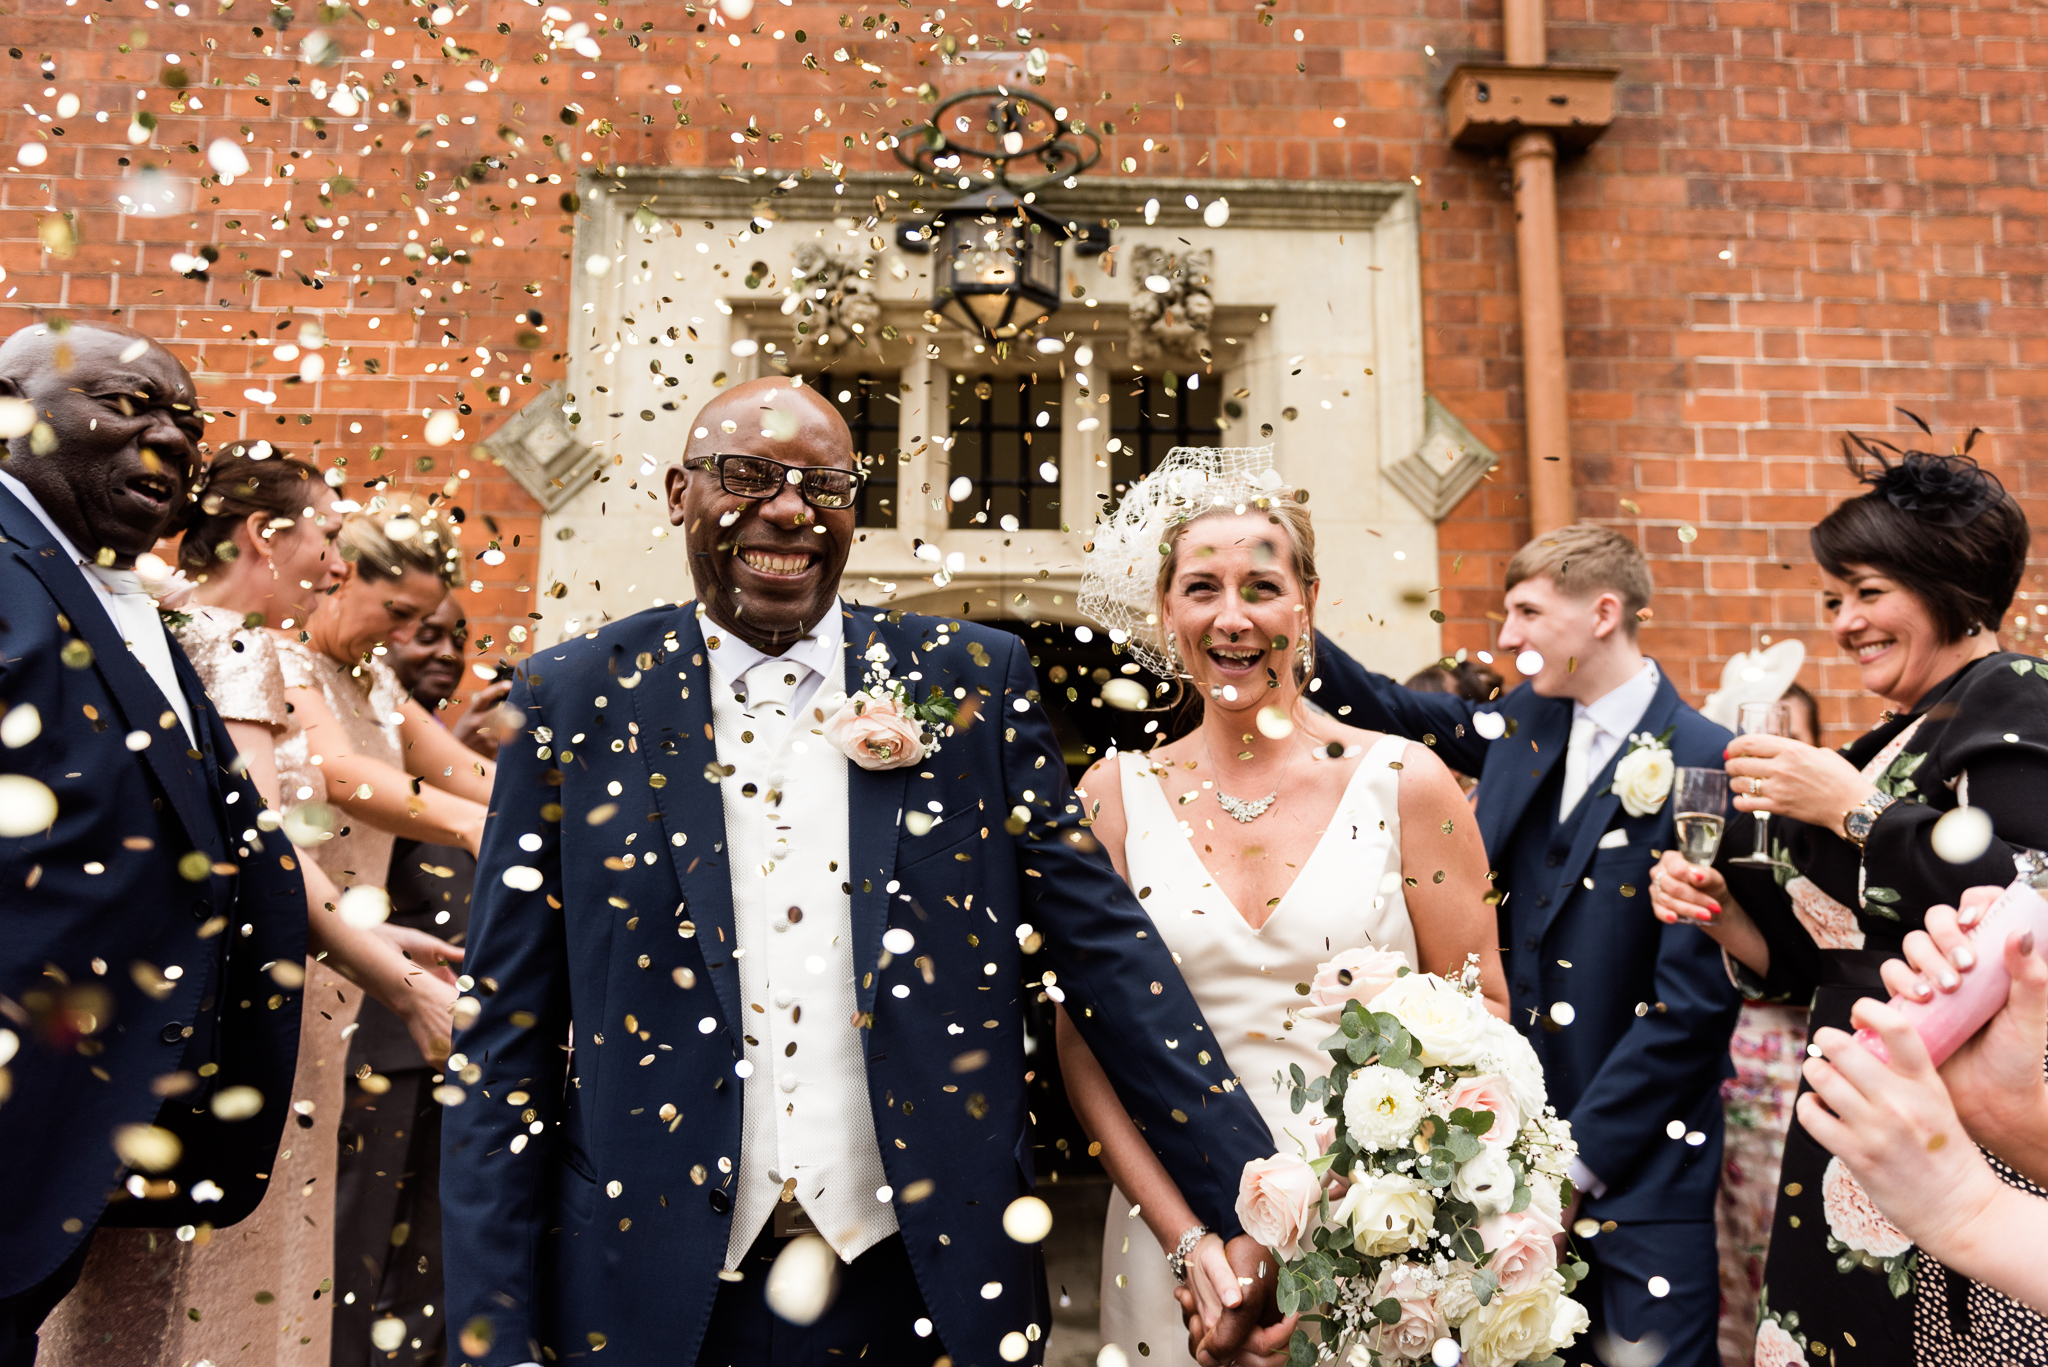 Stylish Easter Wedding at Pendrell Hall Country House Wedding Venue Staffordshire - Jenny Harper-31.jpg